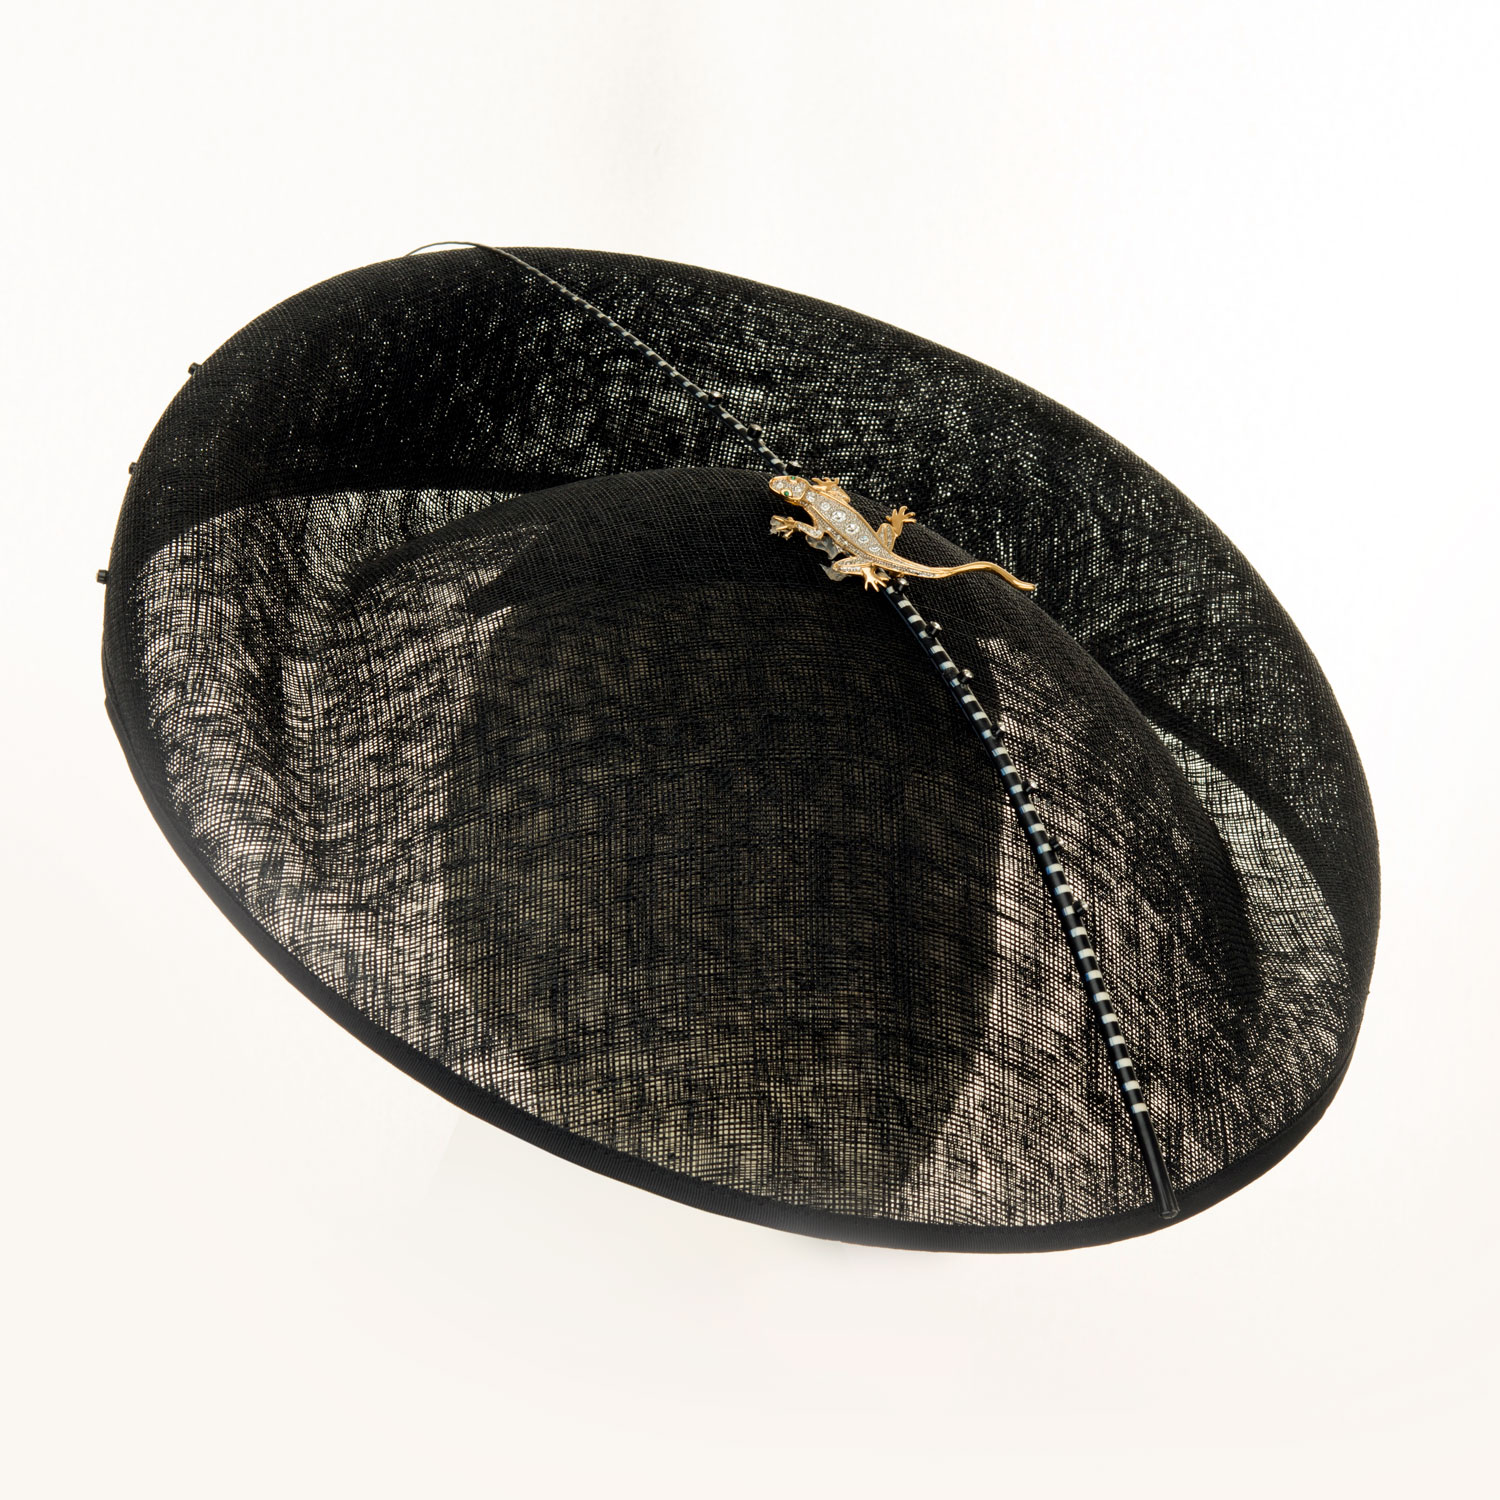 WIDE BLACK REPTILE HAT WITH BLUE CRYSTALS